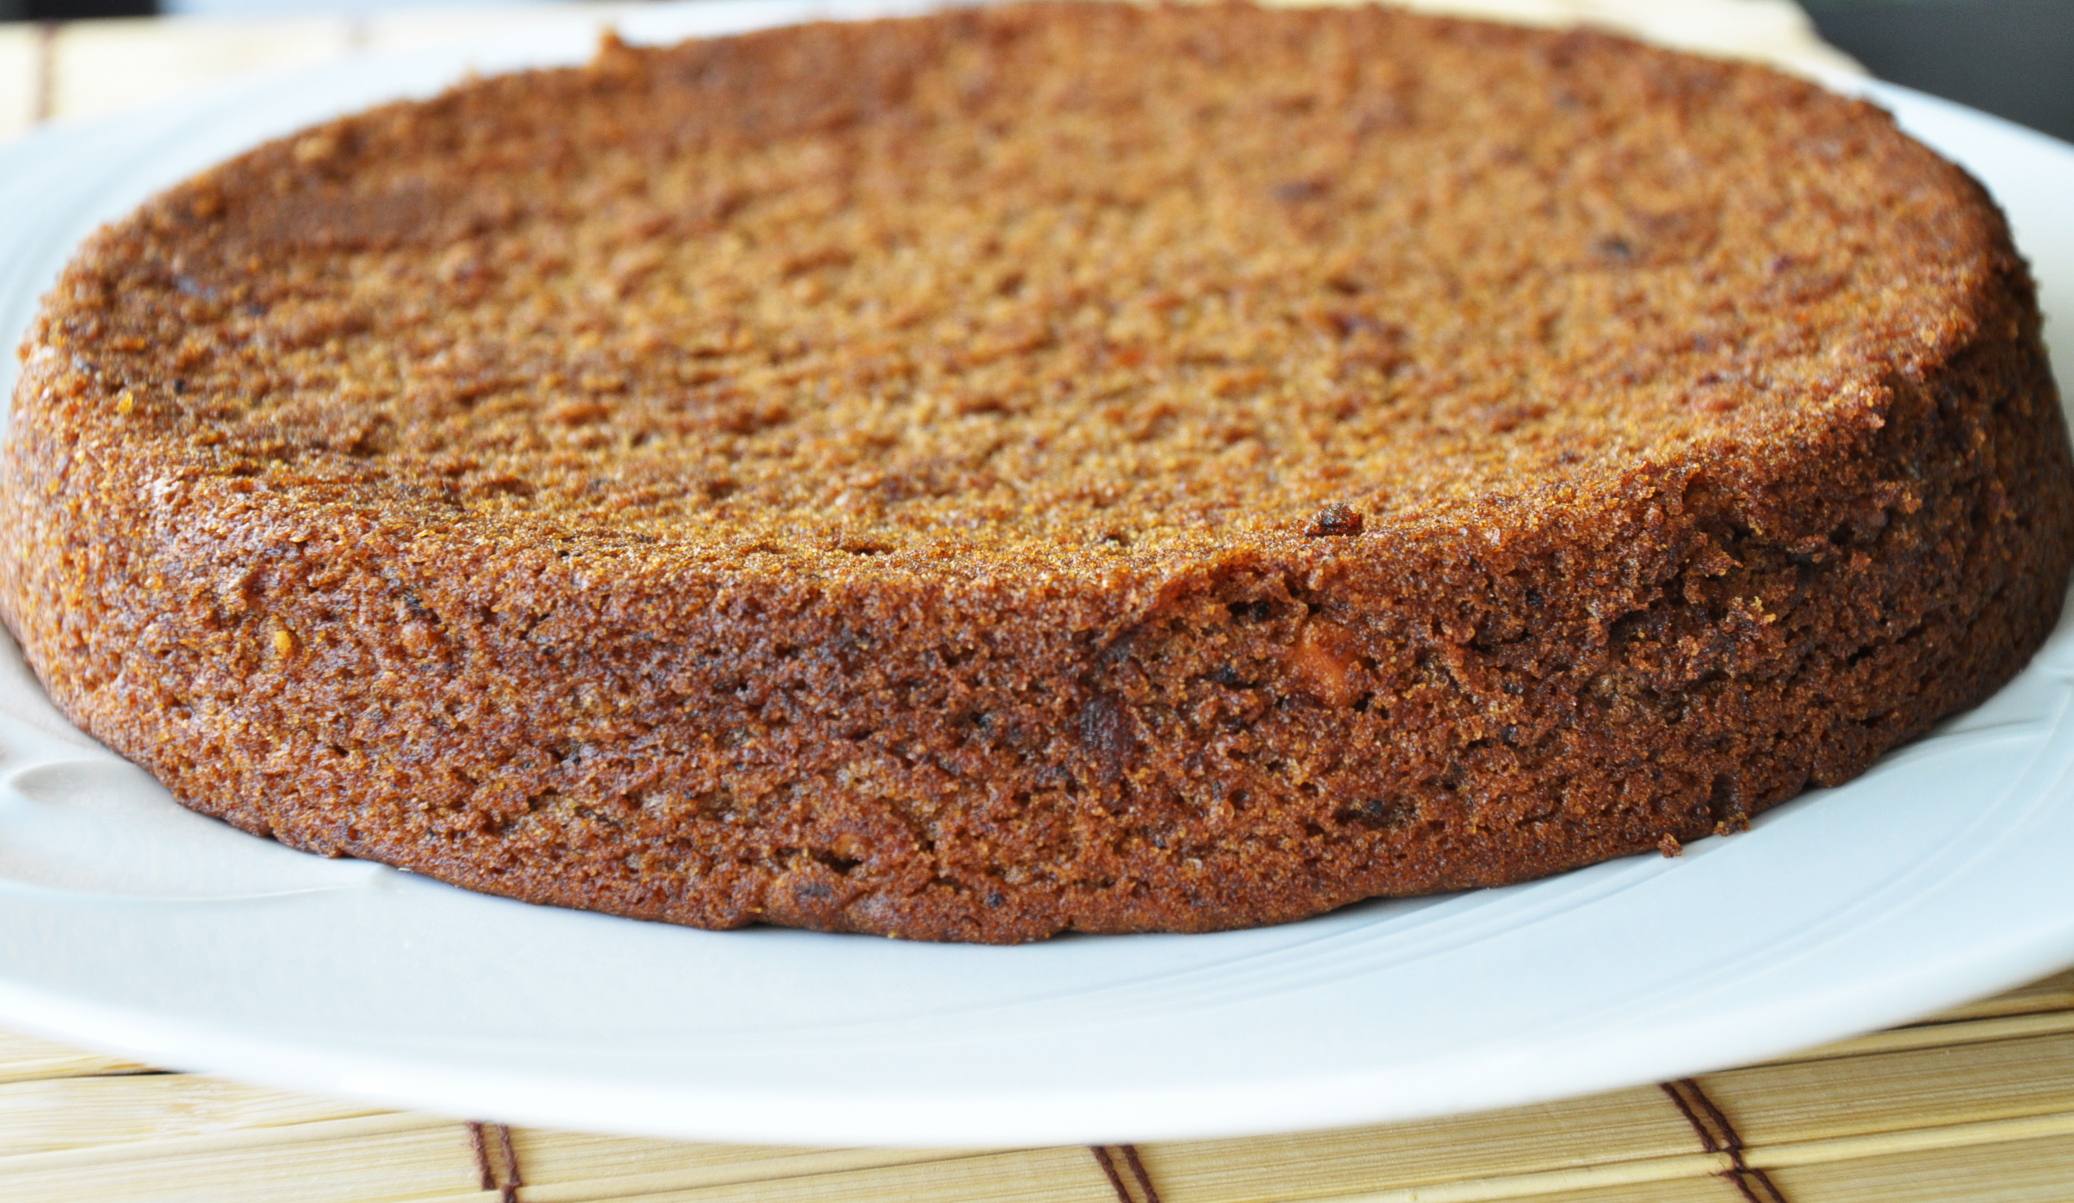 Cake With Cream Of Wheat : Vegan Whole Wheat Date Walnut Cake - Sugarless ...